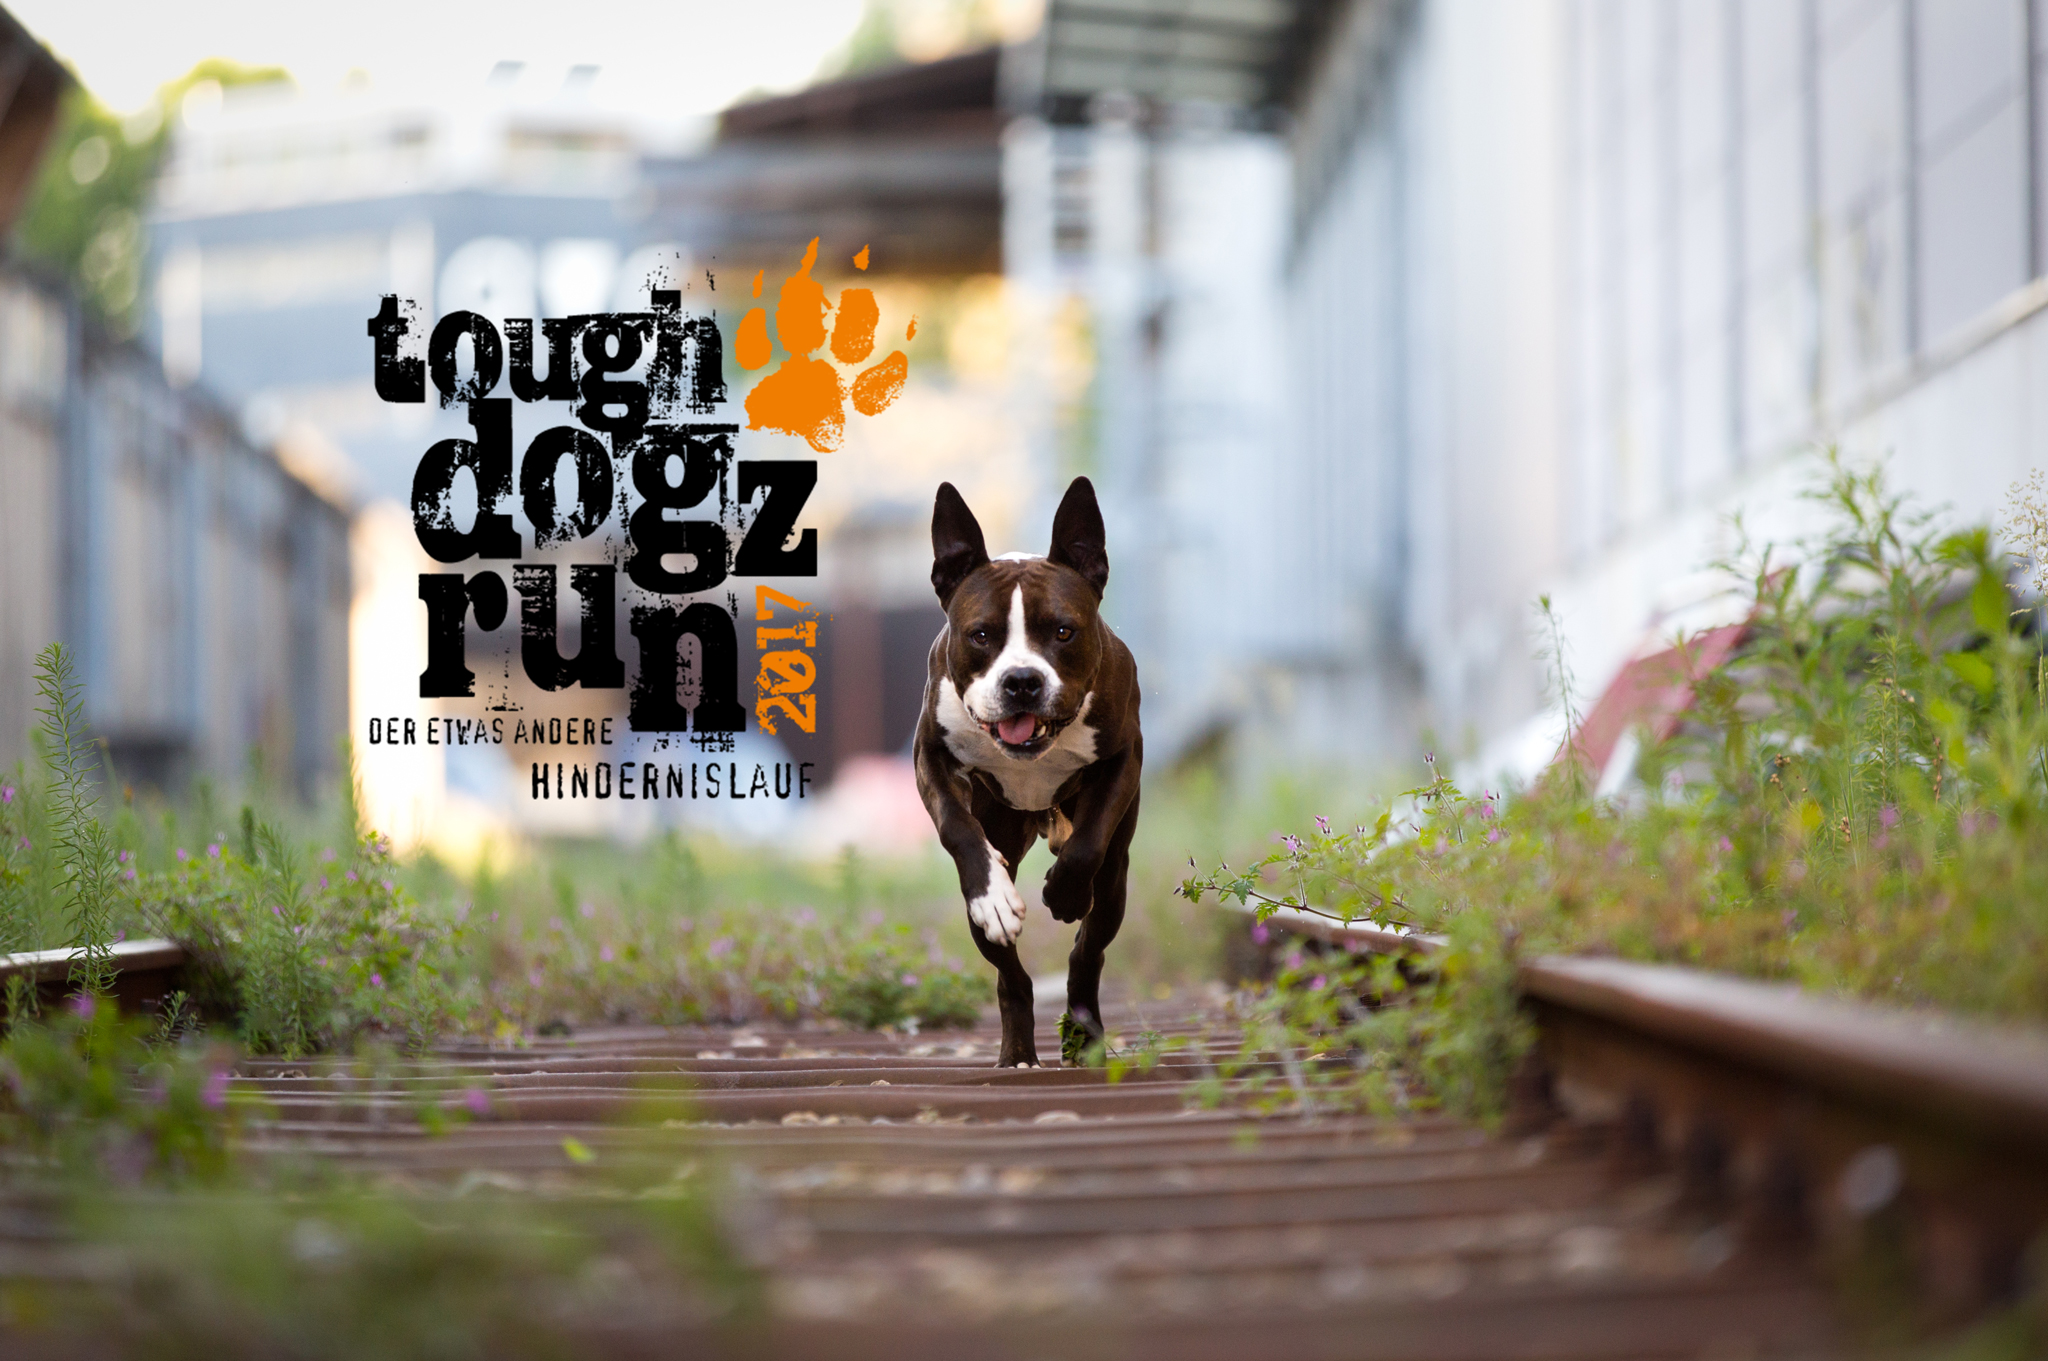 Though Dogz Run